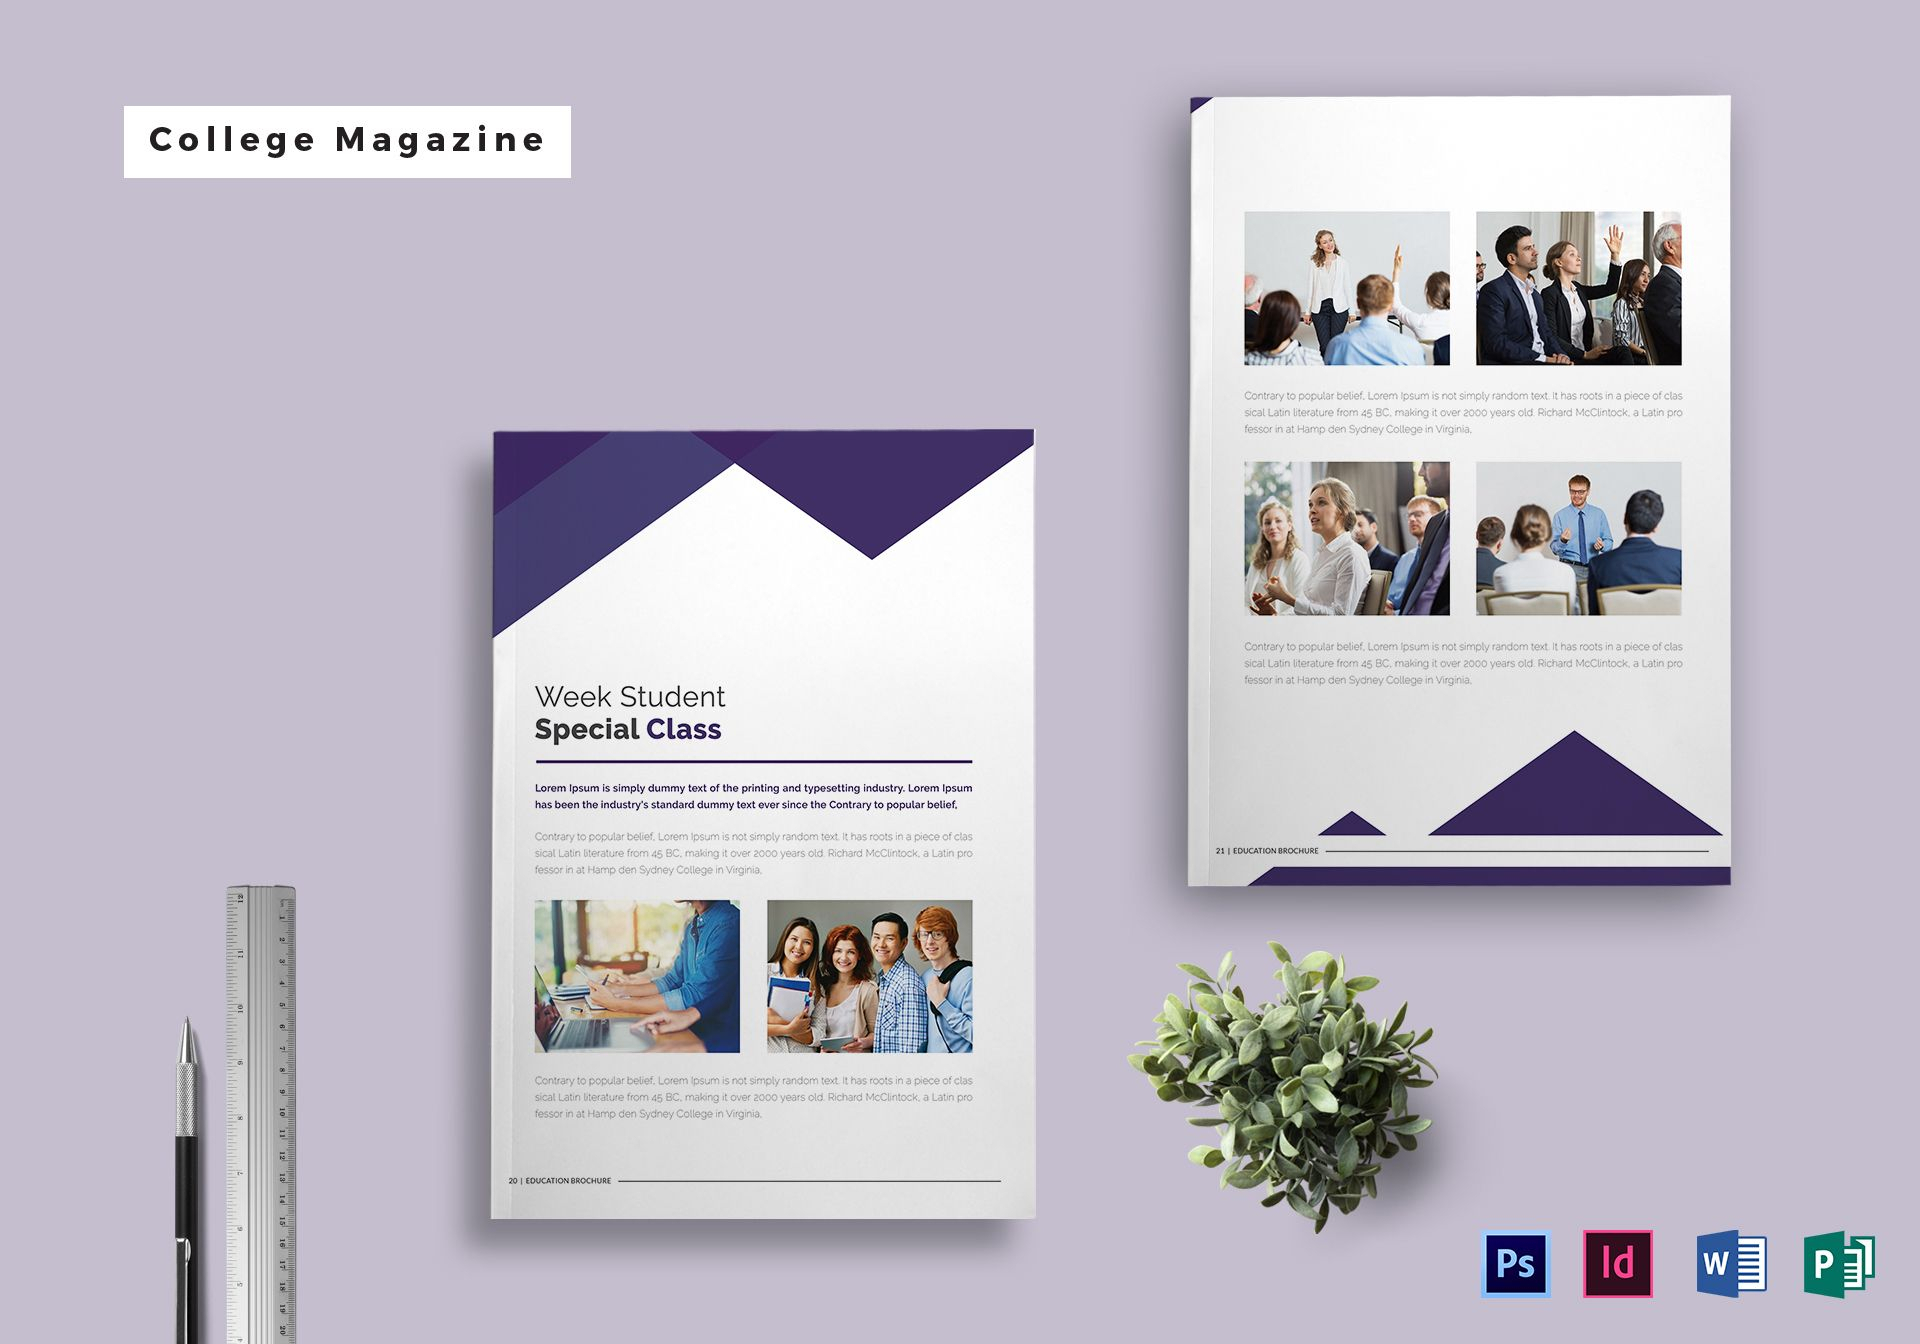 College Magazine Template Pertaining To Magazine Ad Template Throughout Magazine Ad Template Word